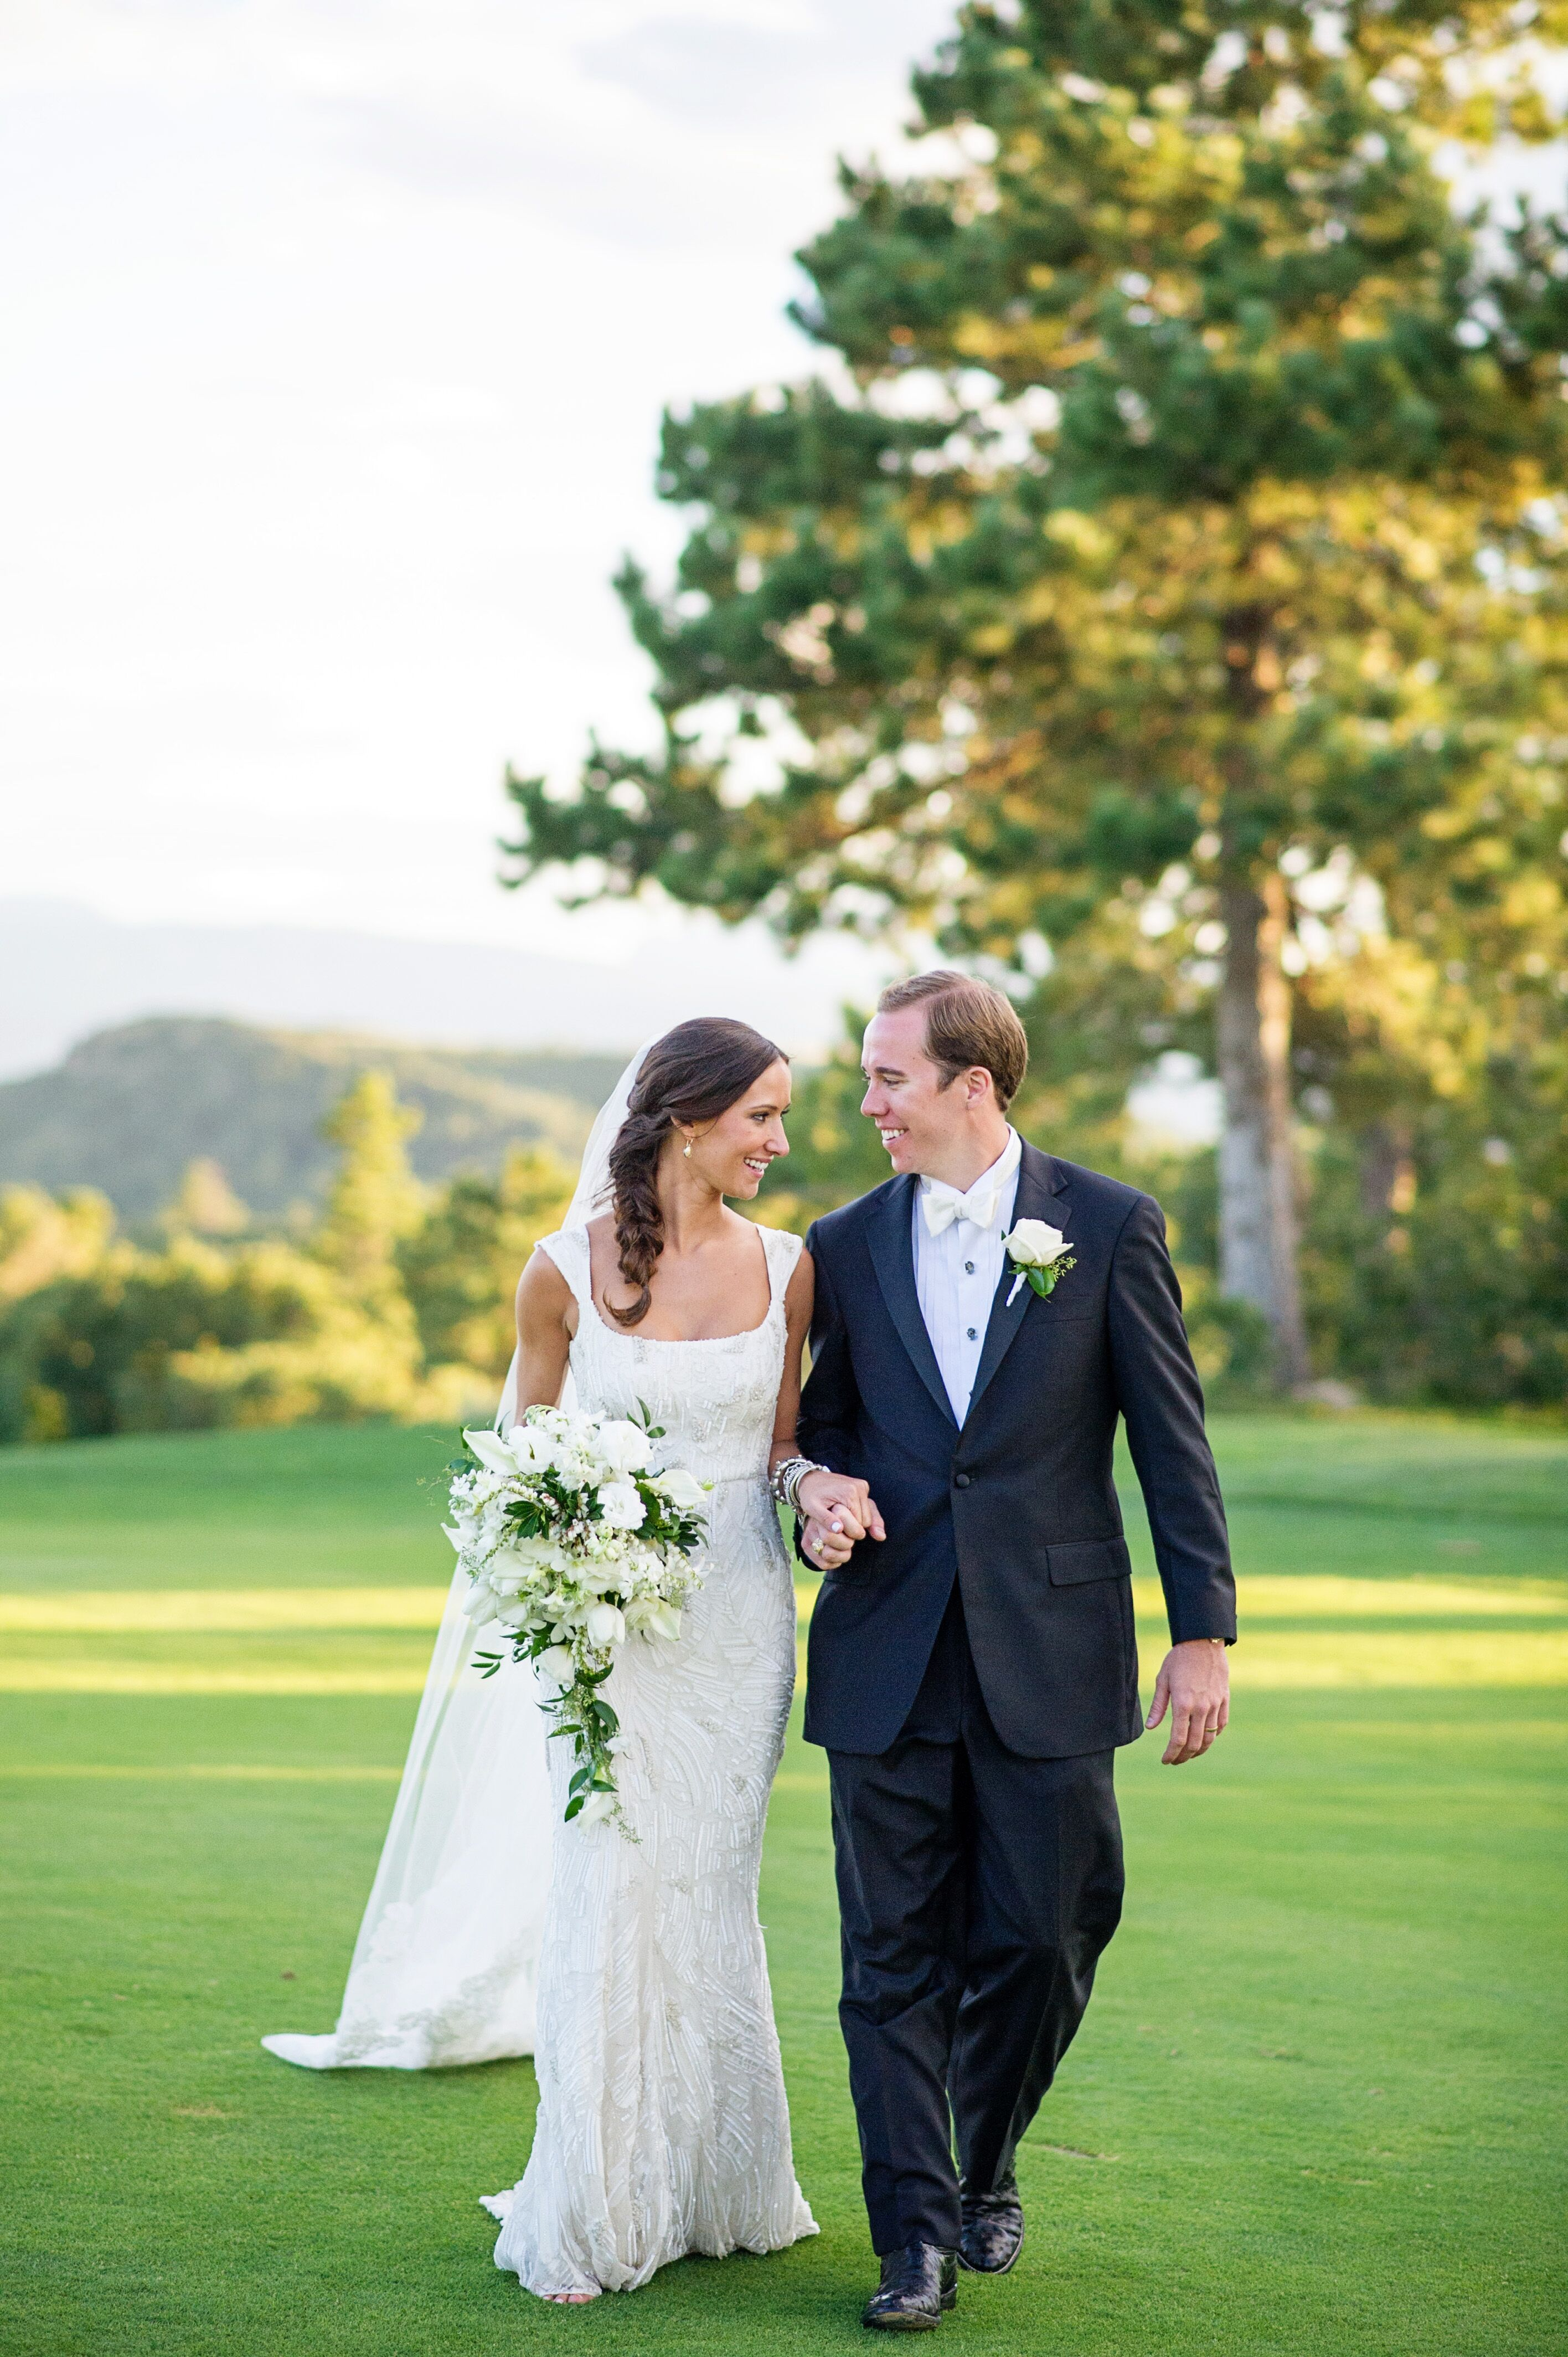 A Classic Black And White Wedding At Sanctuary Golf Course In